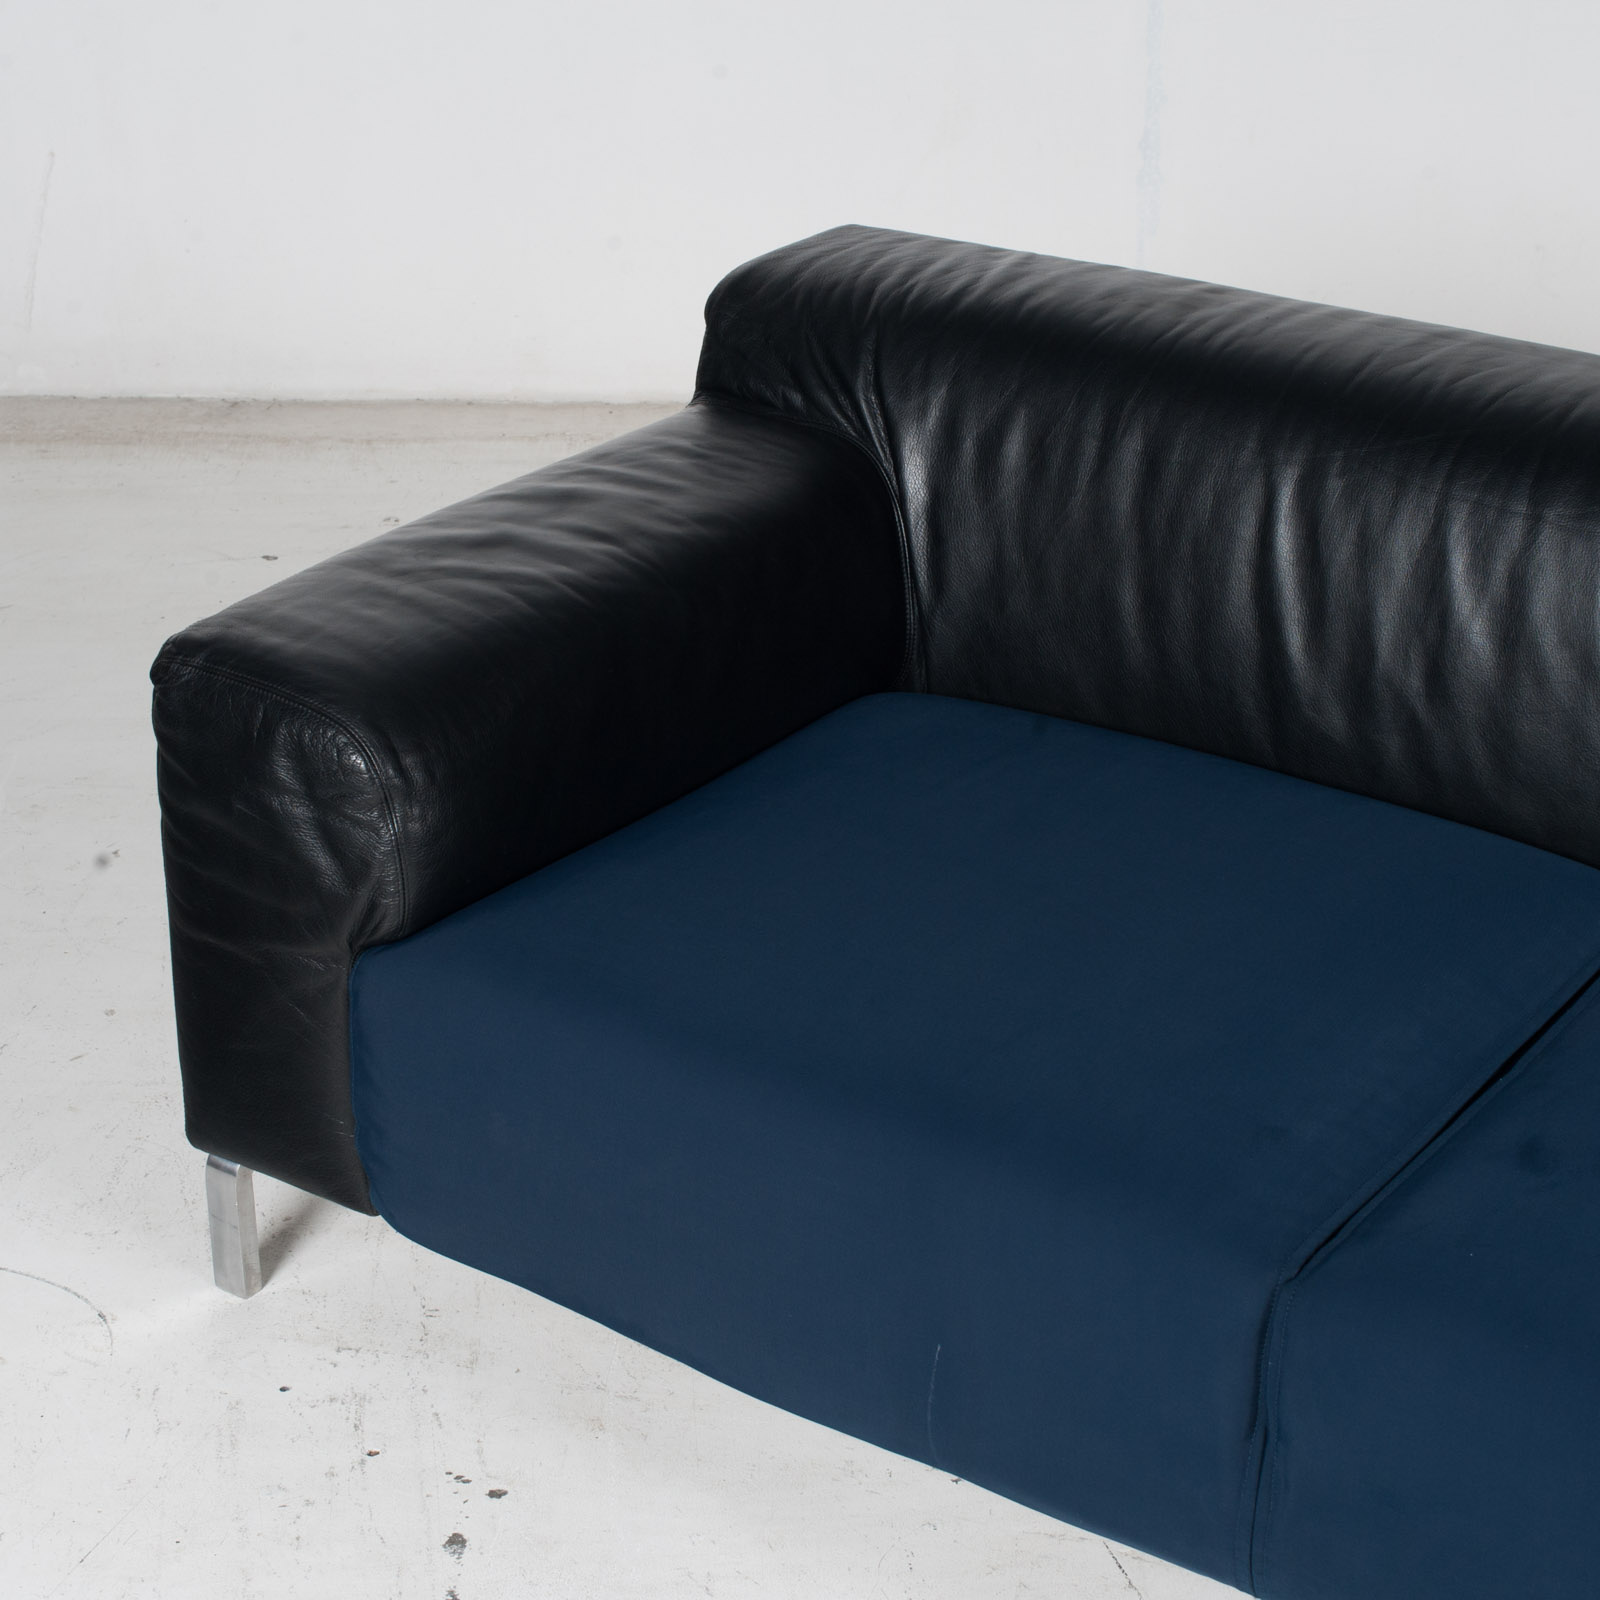 Model Greg 2 Seat Sofa By E. Progetti With Back Upholstered In Black Leather And Seat In Blue Fabric With Chrome Legs, 1960s, Italy 5